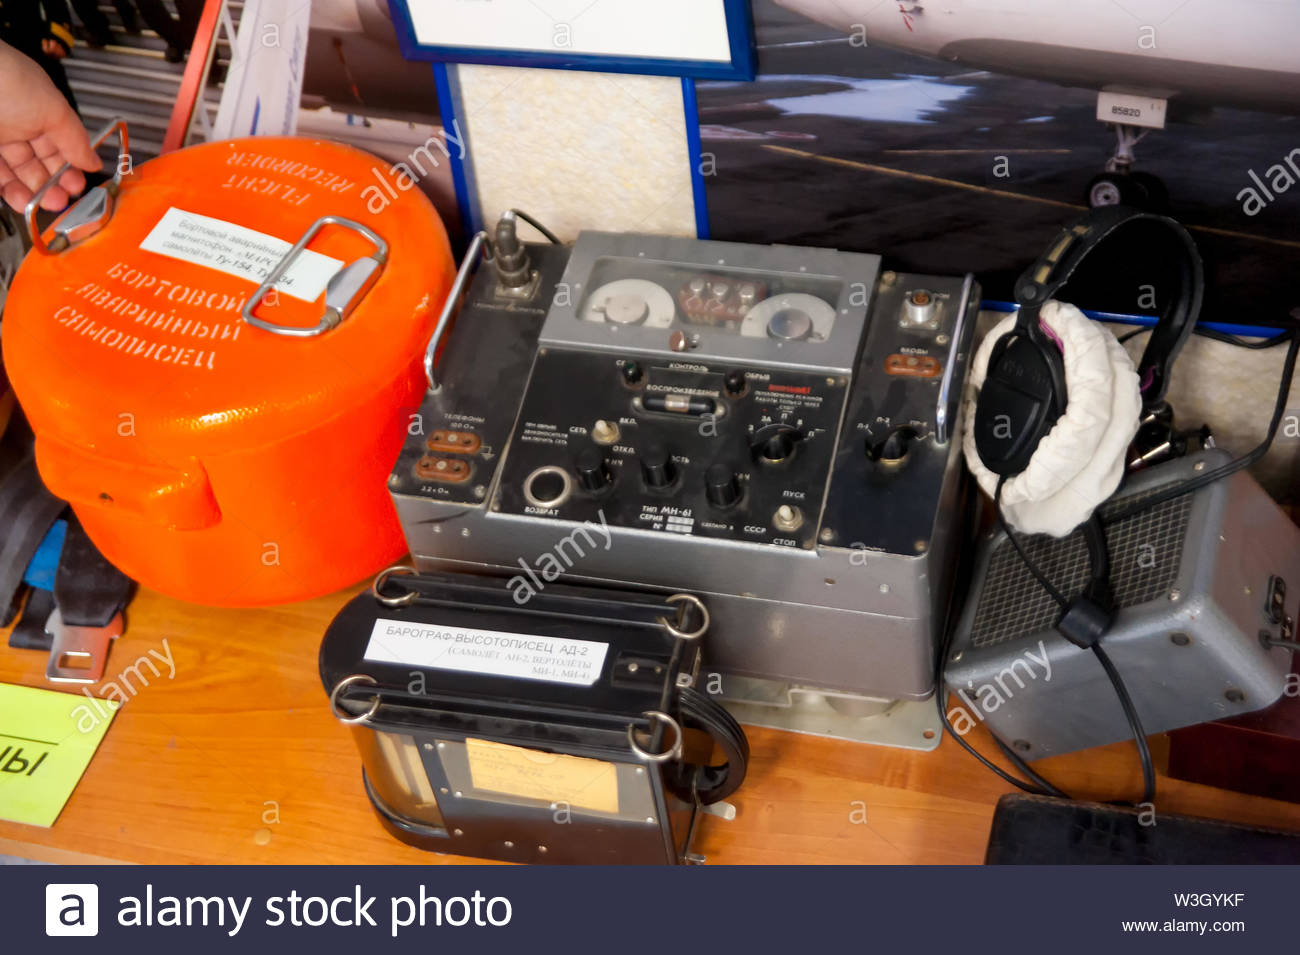 Tyumen, Russia - June 5, 2019: Aircraft repair helicopter UTair Engineering plant. Flight data recorders from a plane. Black boxes - Stock Image